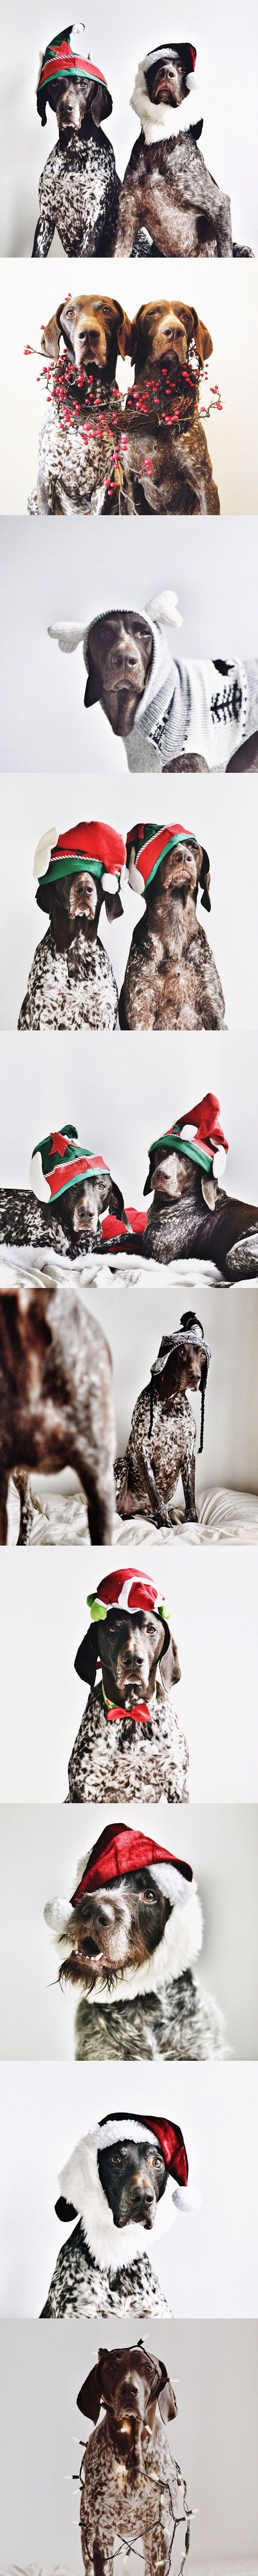 Gus & Travis - Christmas Photos - #GSP German Shorthaired Pointer #braque allemand